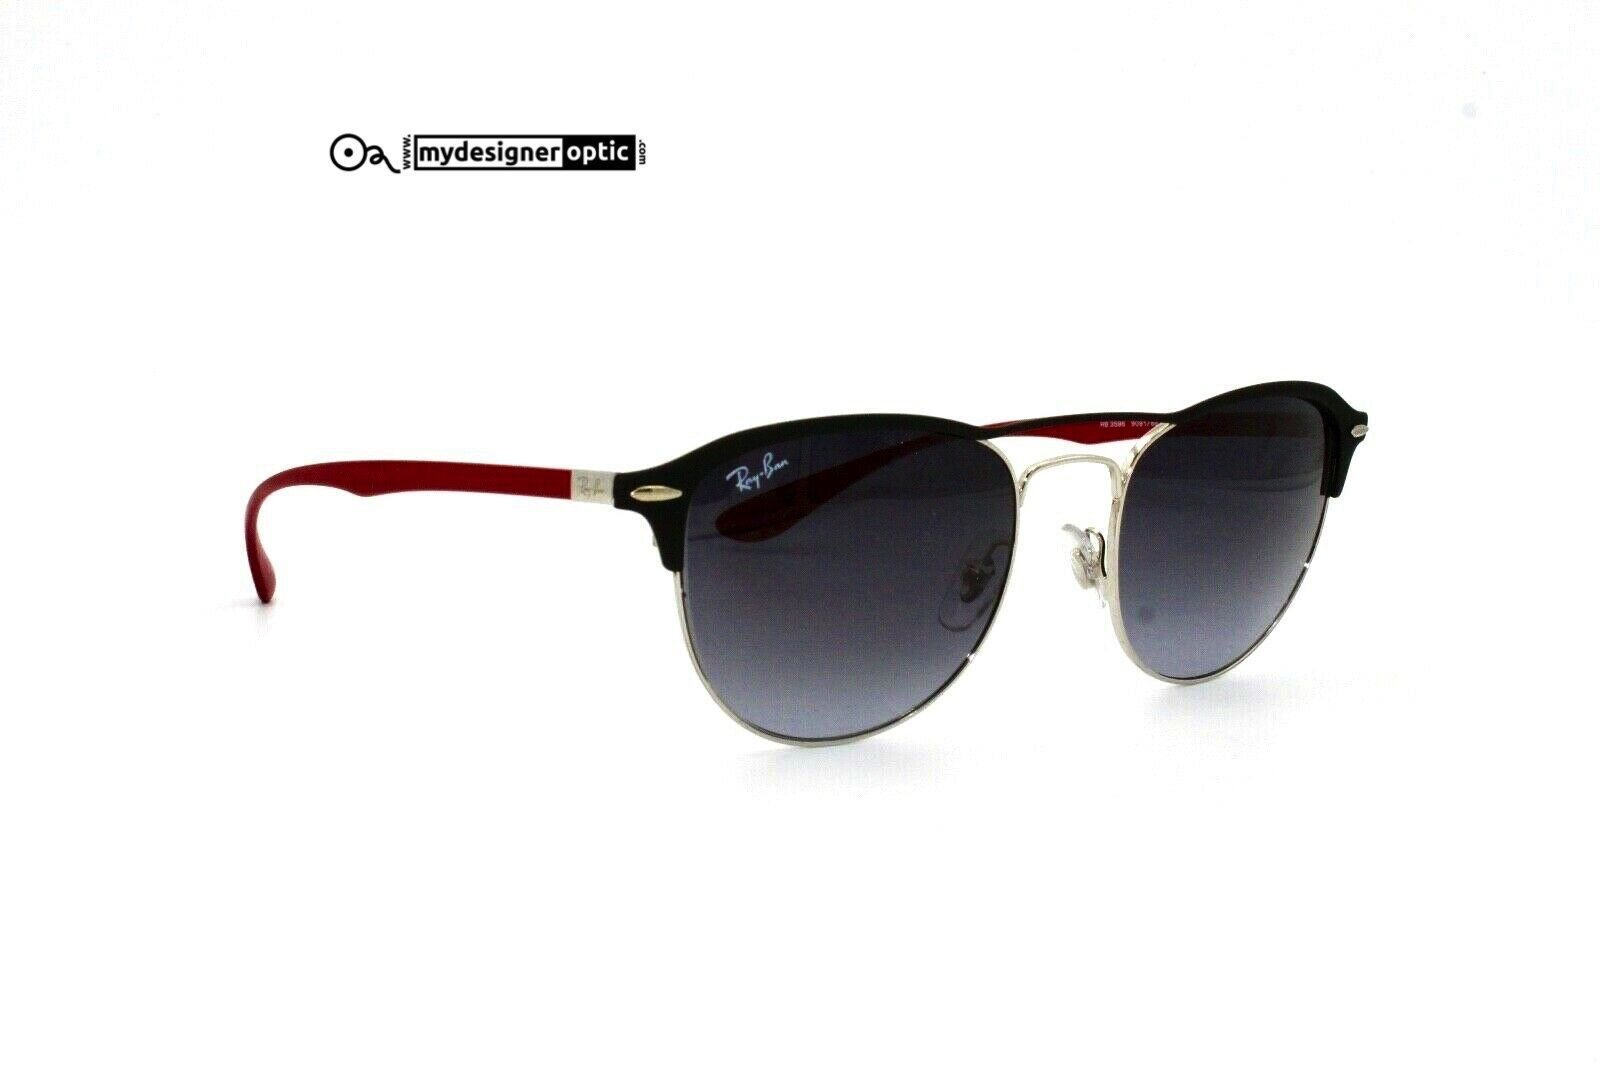 Ray Ban Sunglasses RB3596 9091/88 54 19 145 3N Liteforce Made in Italy - Mydesigneroptic